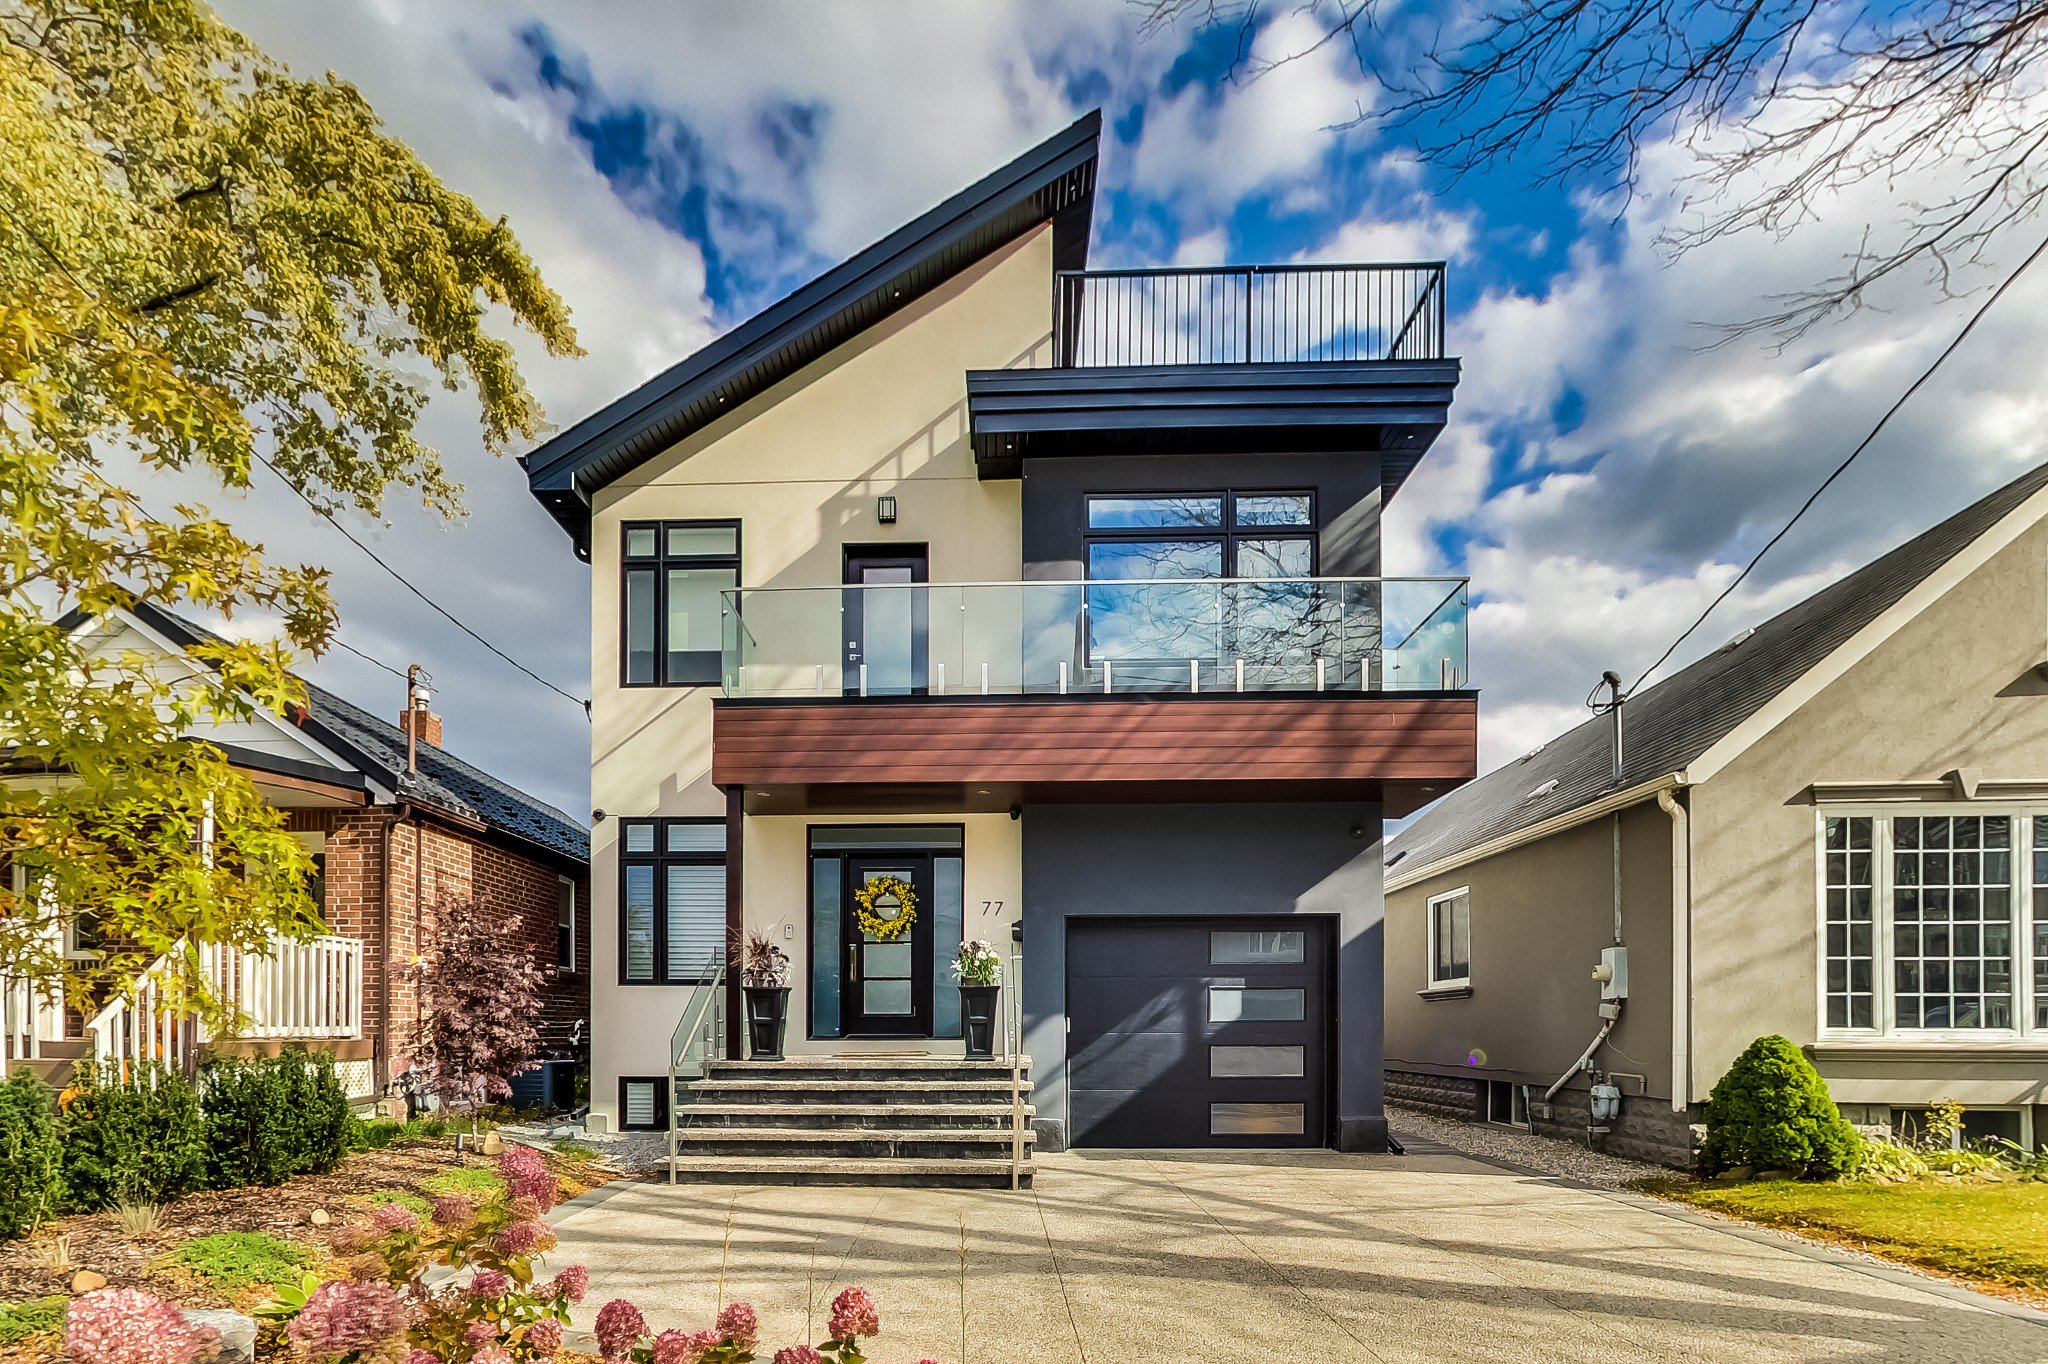 Main Photo: 77 Twenty Sixth St in Toronto: Long Branch Freehold for sale (Toronto W06)